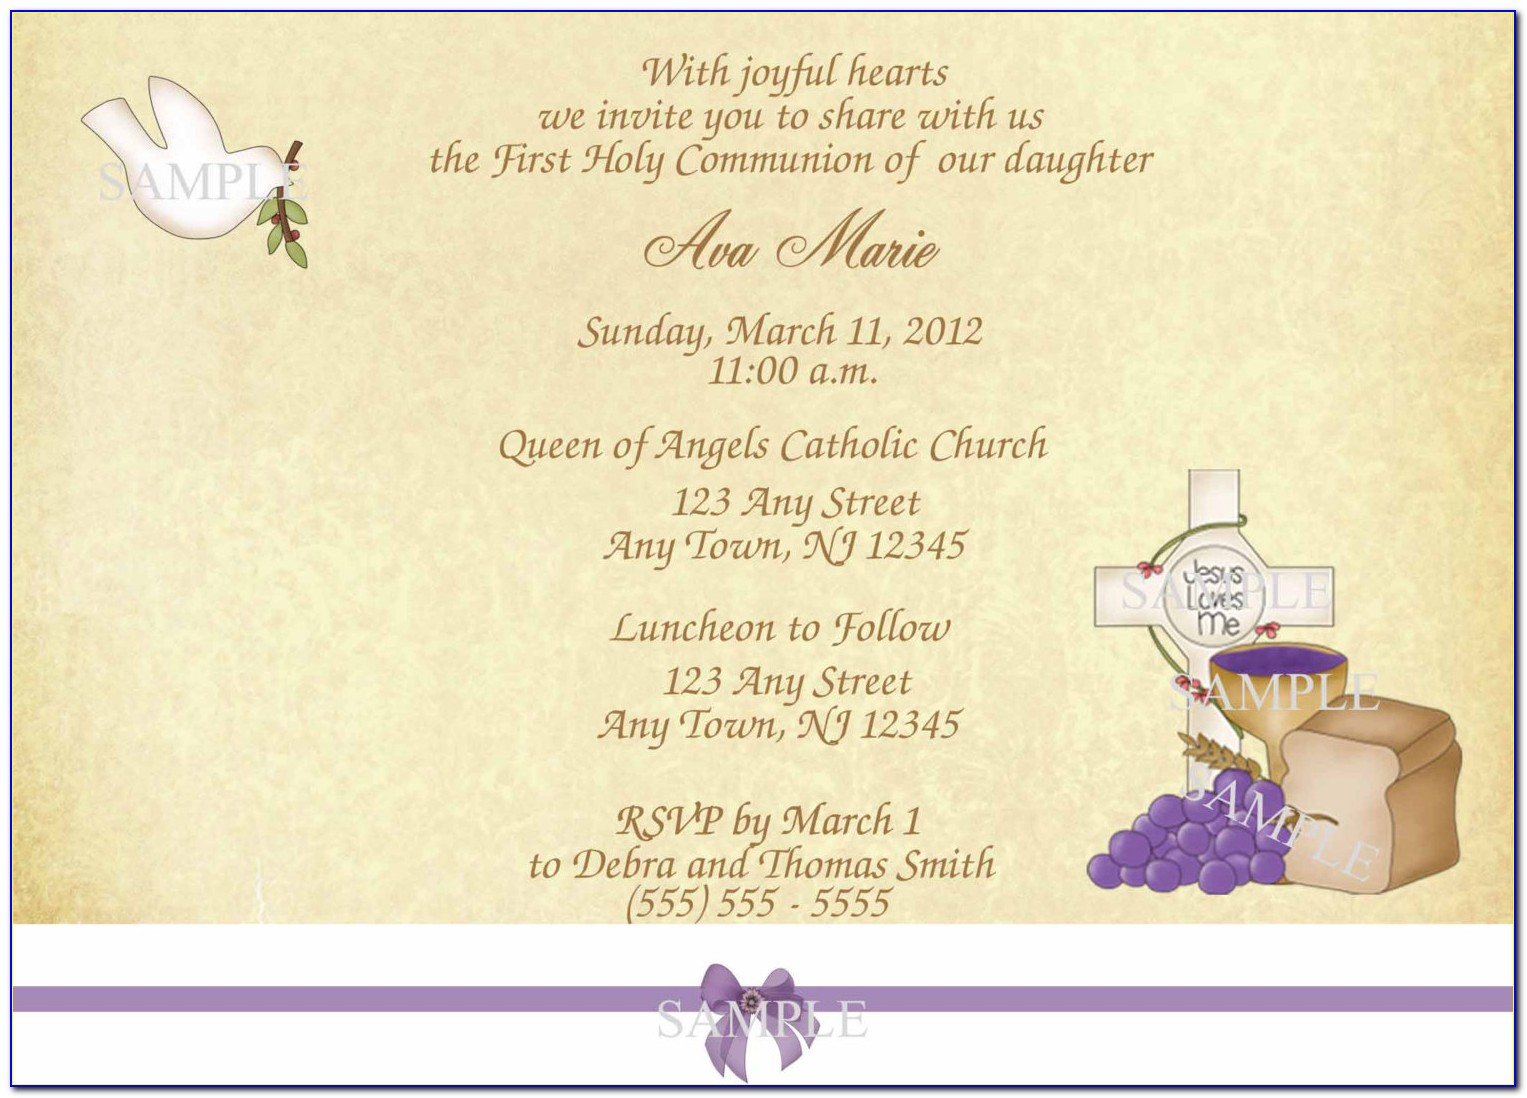 My First Holy Communion Invitation Templates